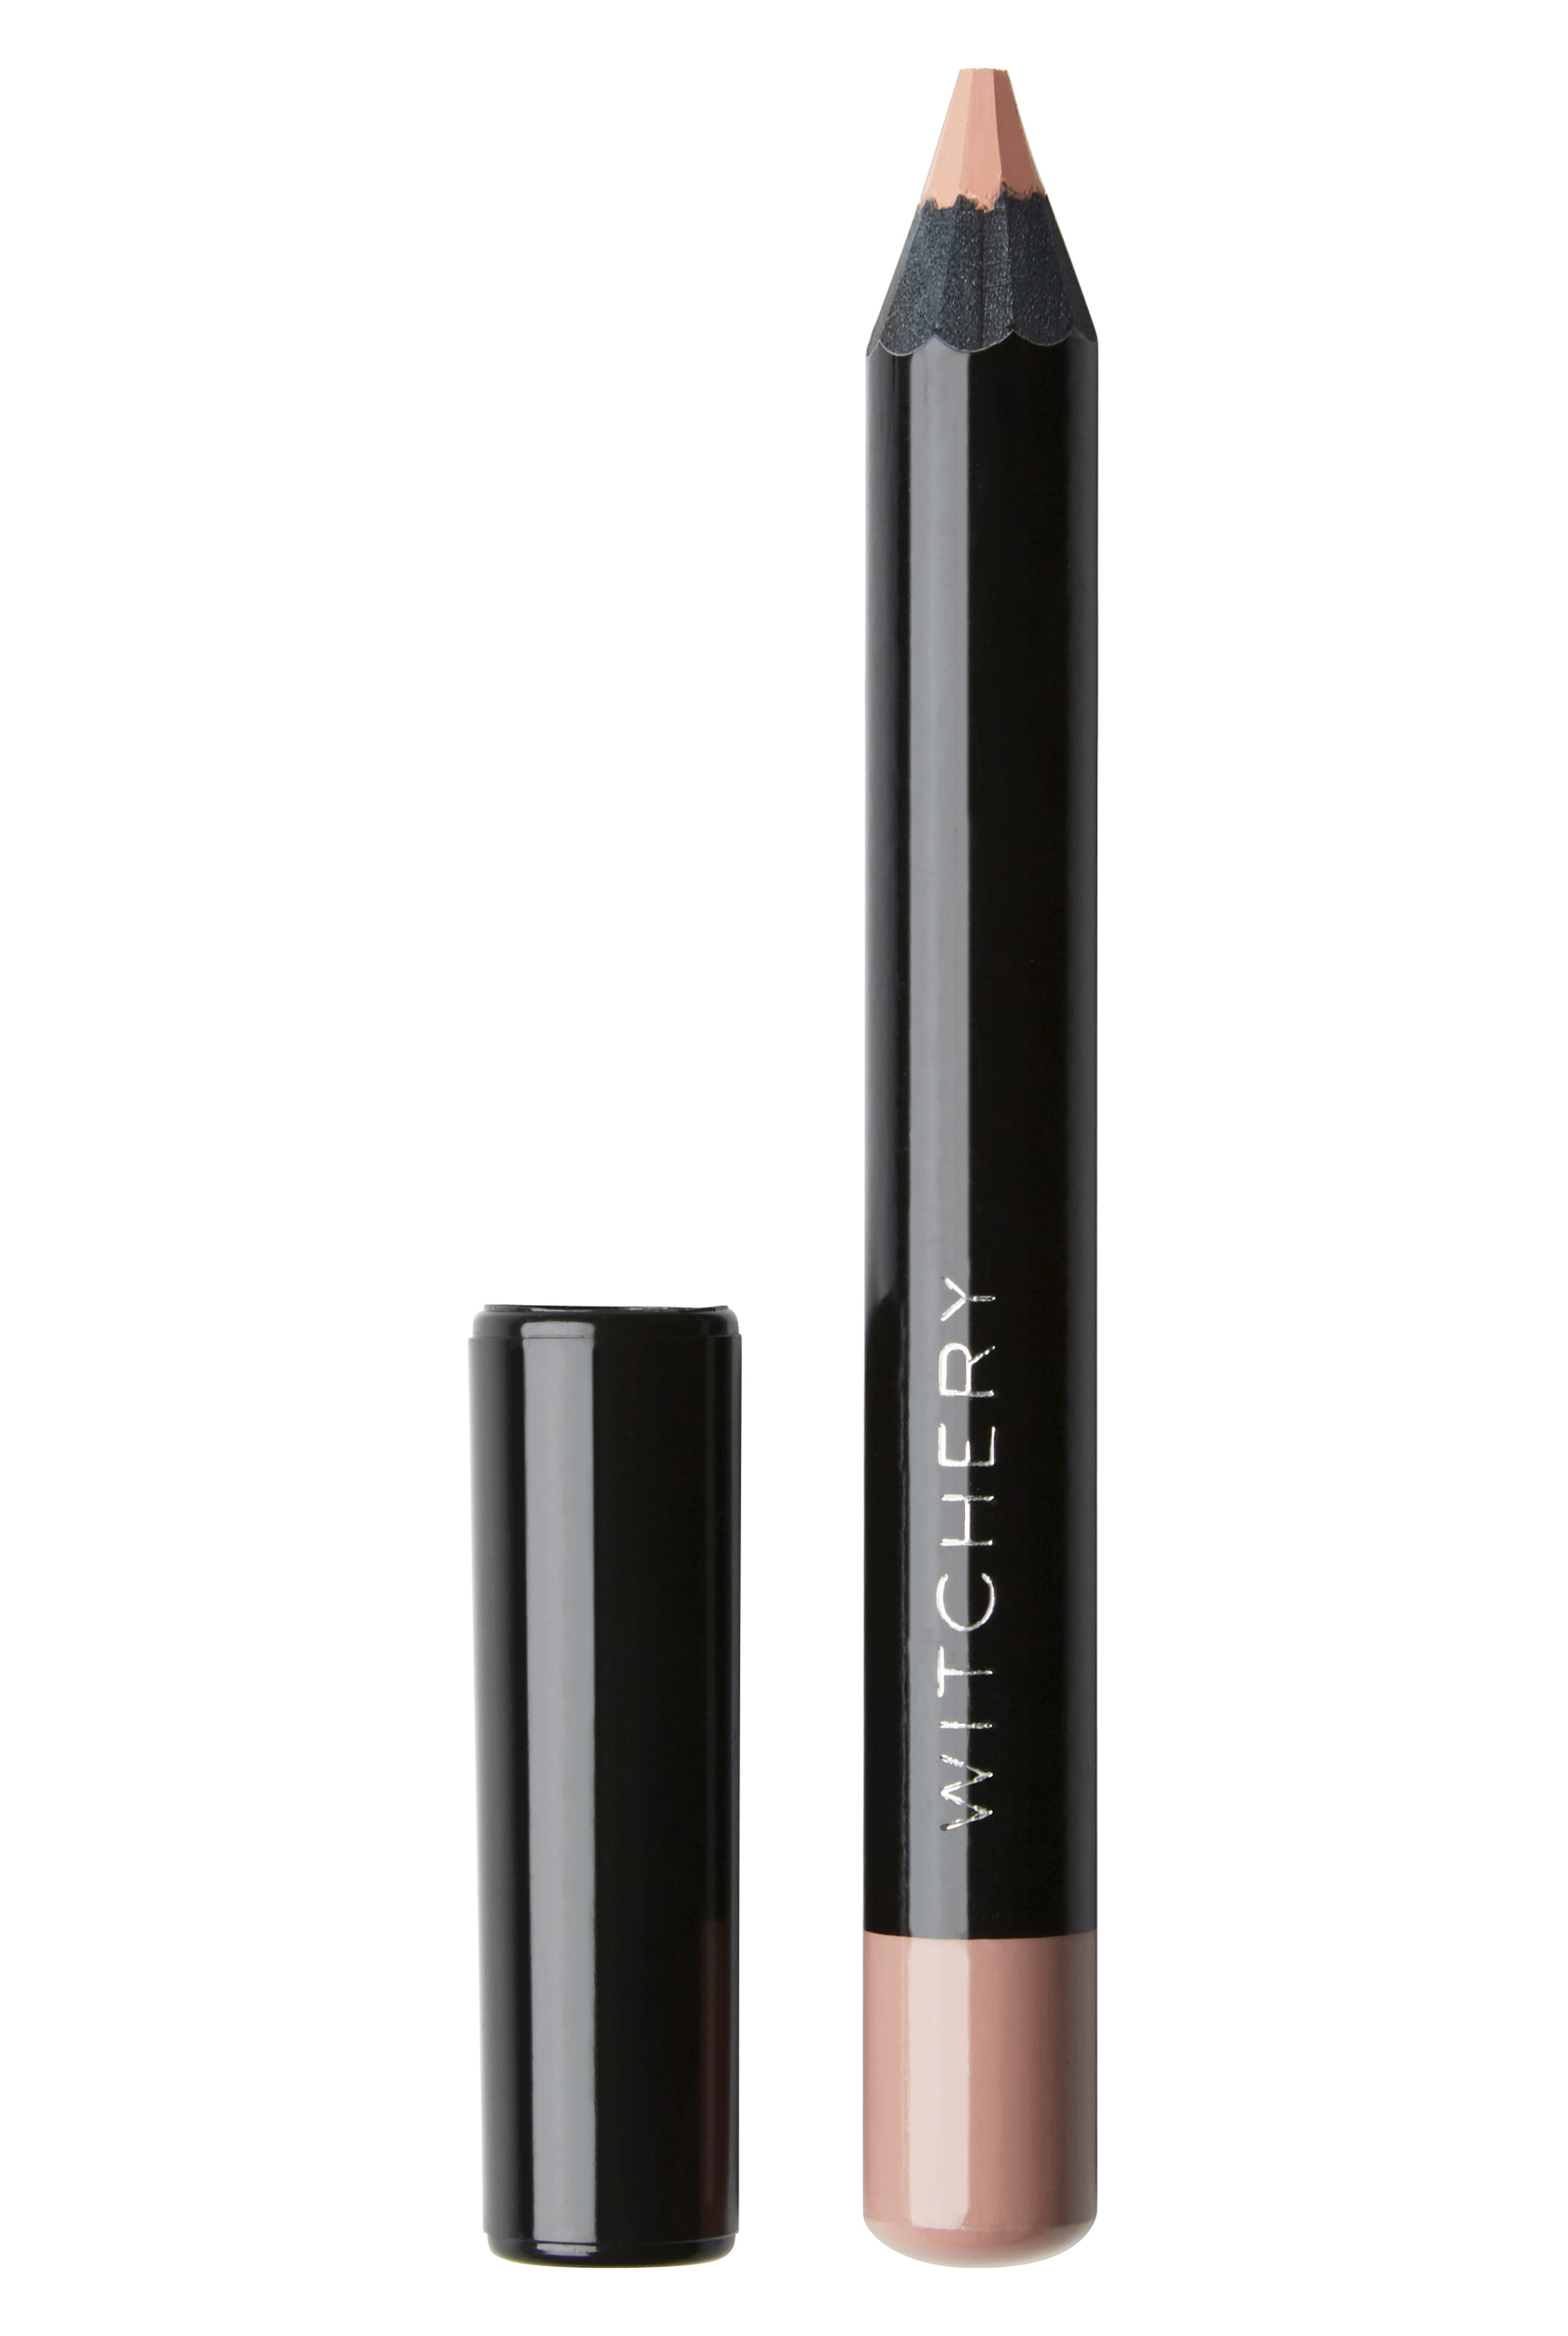 60172147_witchery-beauty-lip-creme-pencil-in-dust-pink-rrp9-90